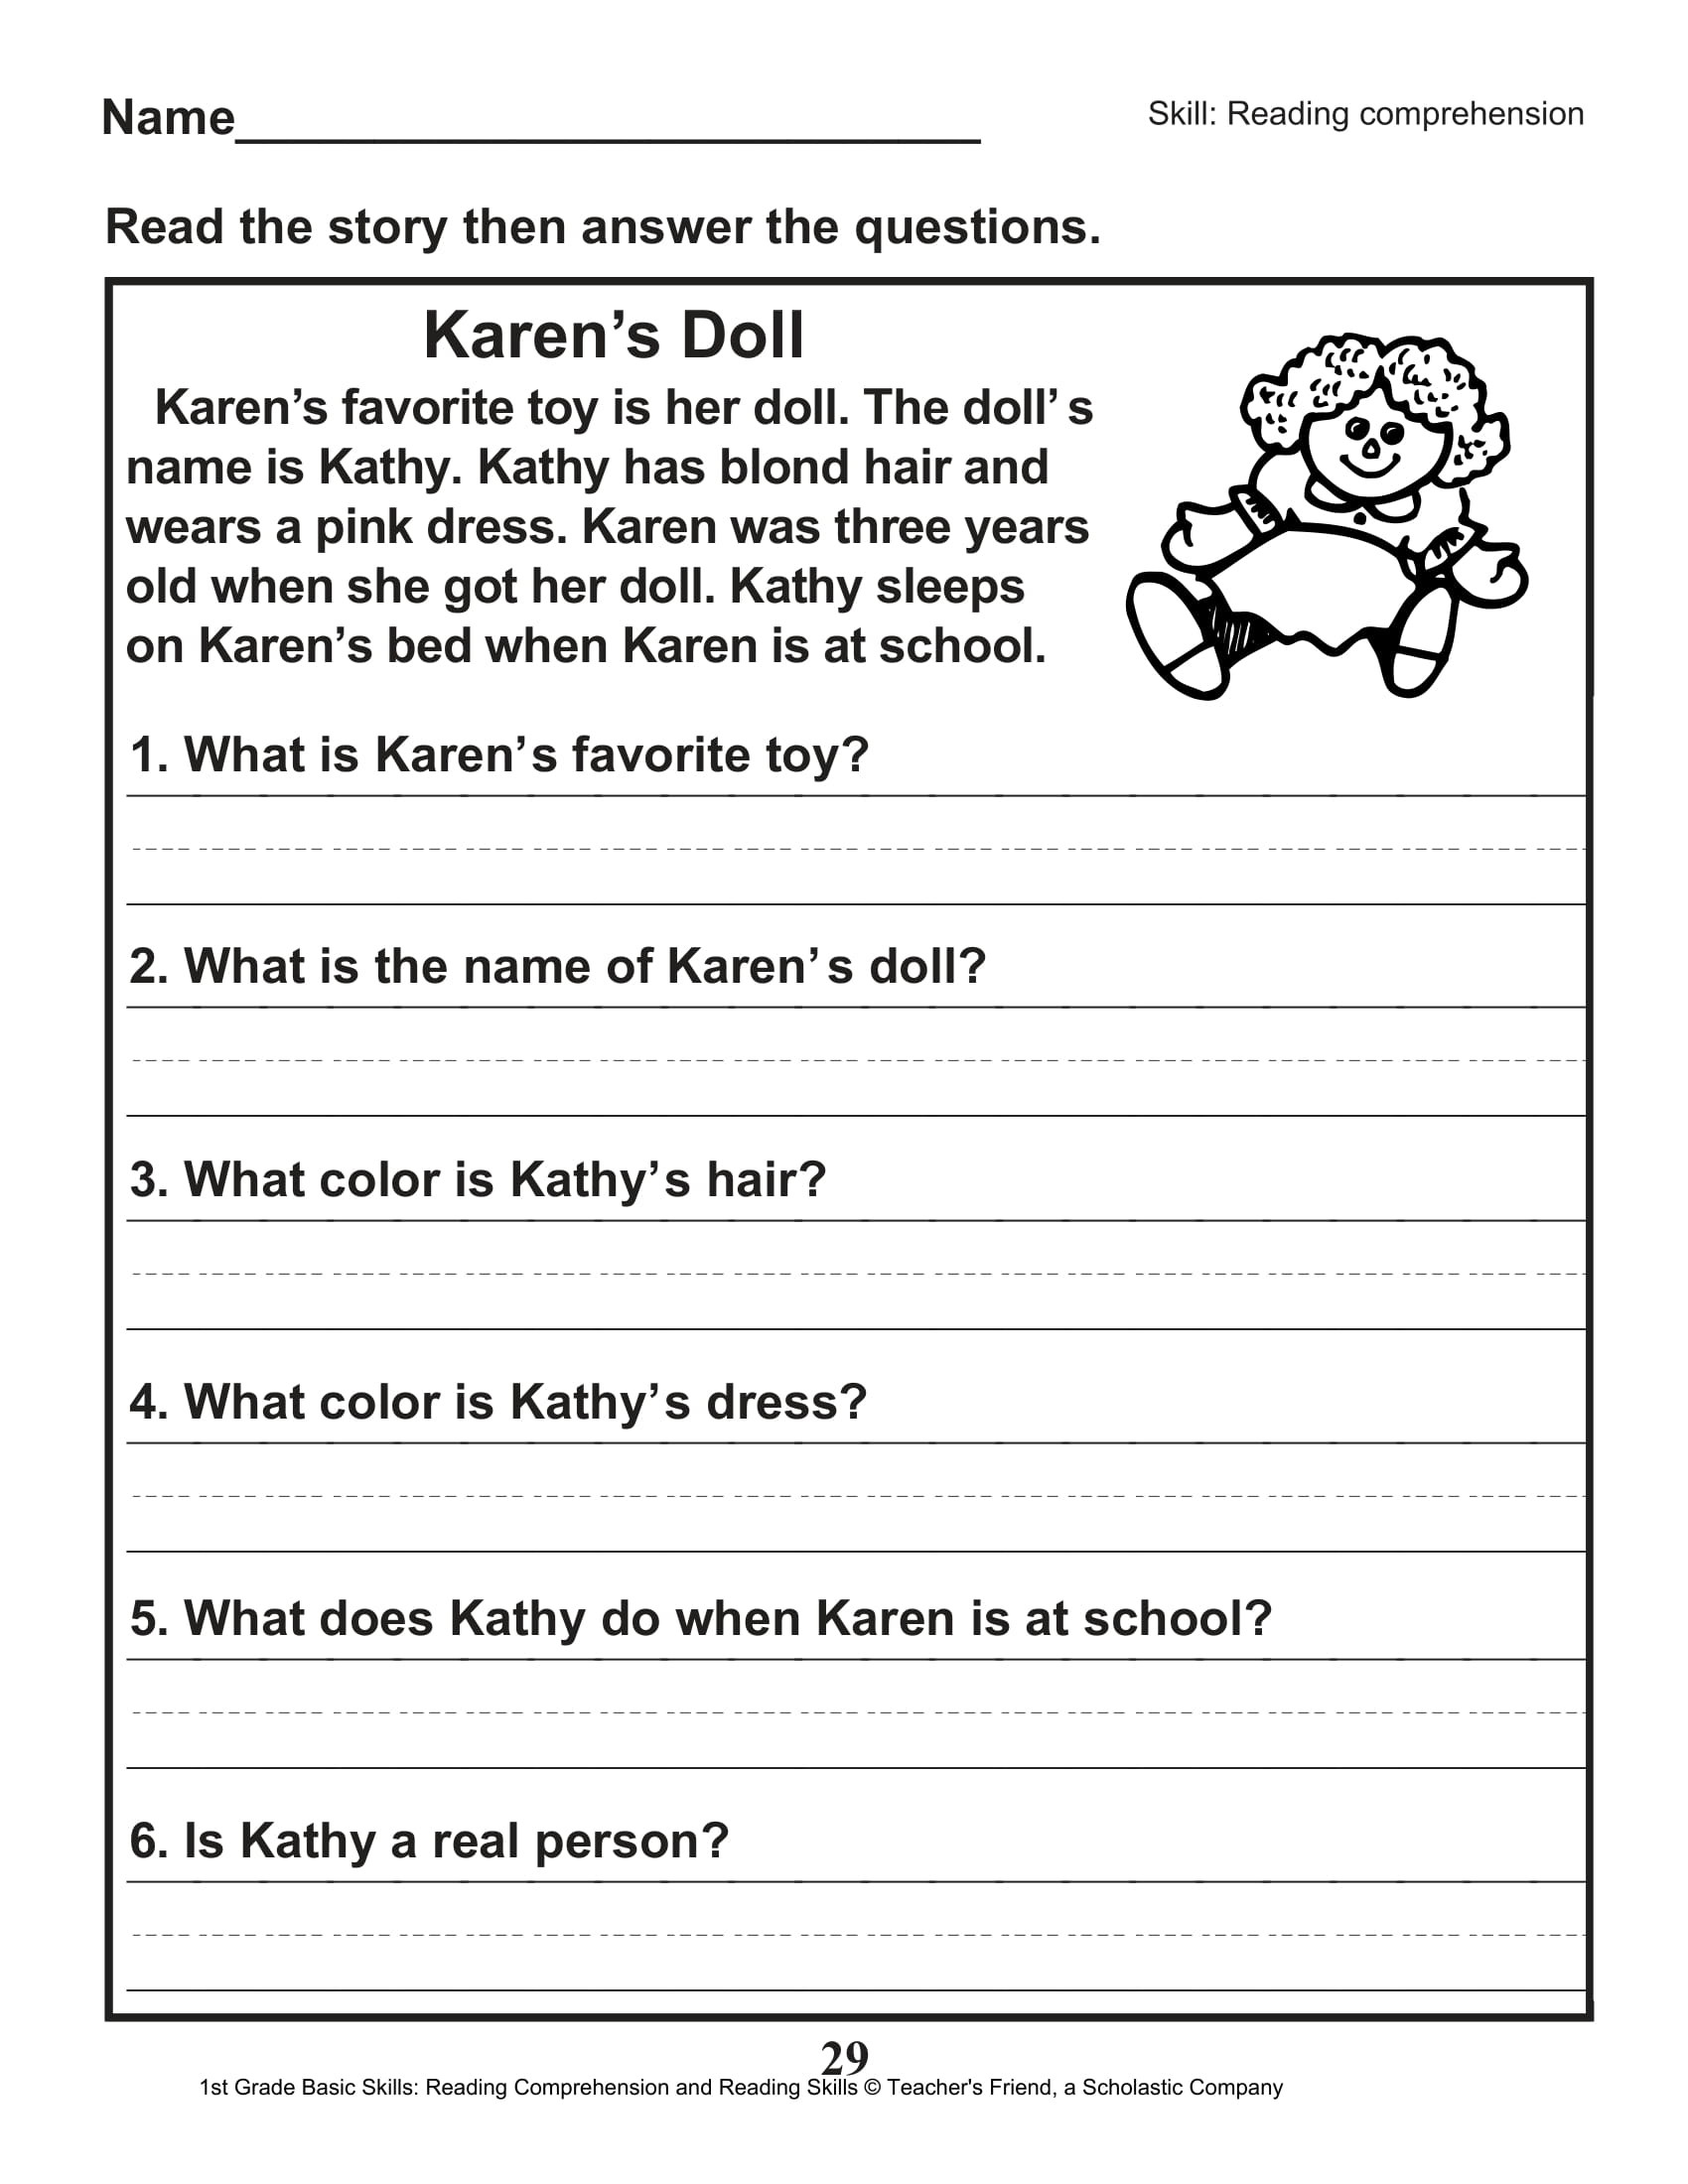 Comprehension Worksheet First Grade Math Worksheet Reading Worksheets First Grade 1st Puppies